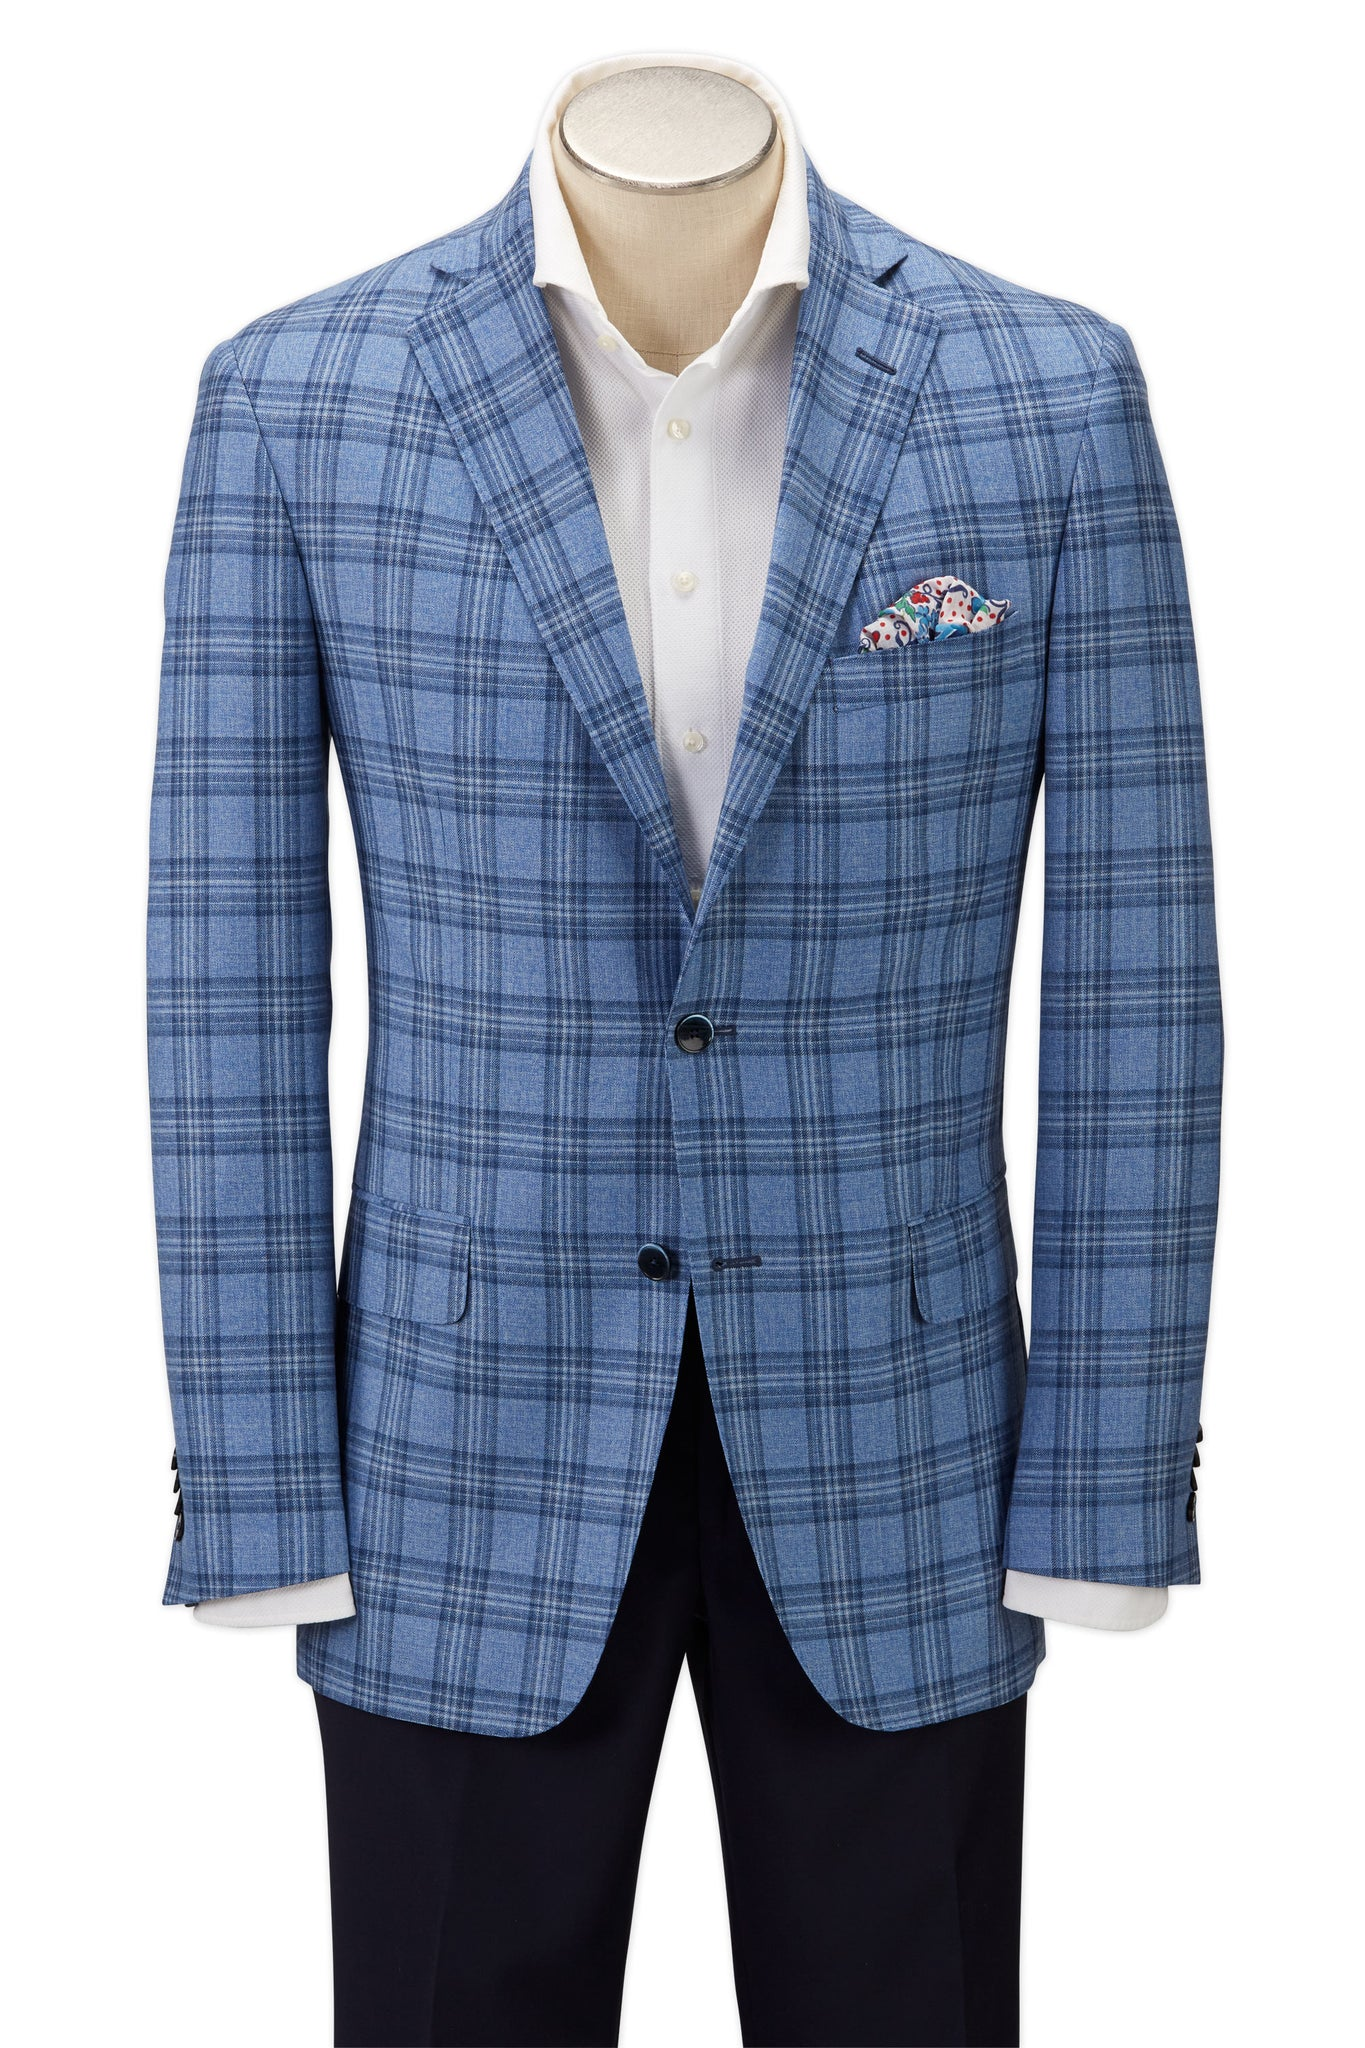 Modern Fit Blue Plaid Sport Coat -  Hardwick.com